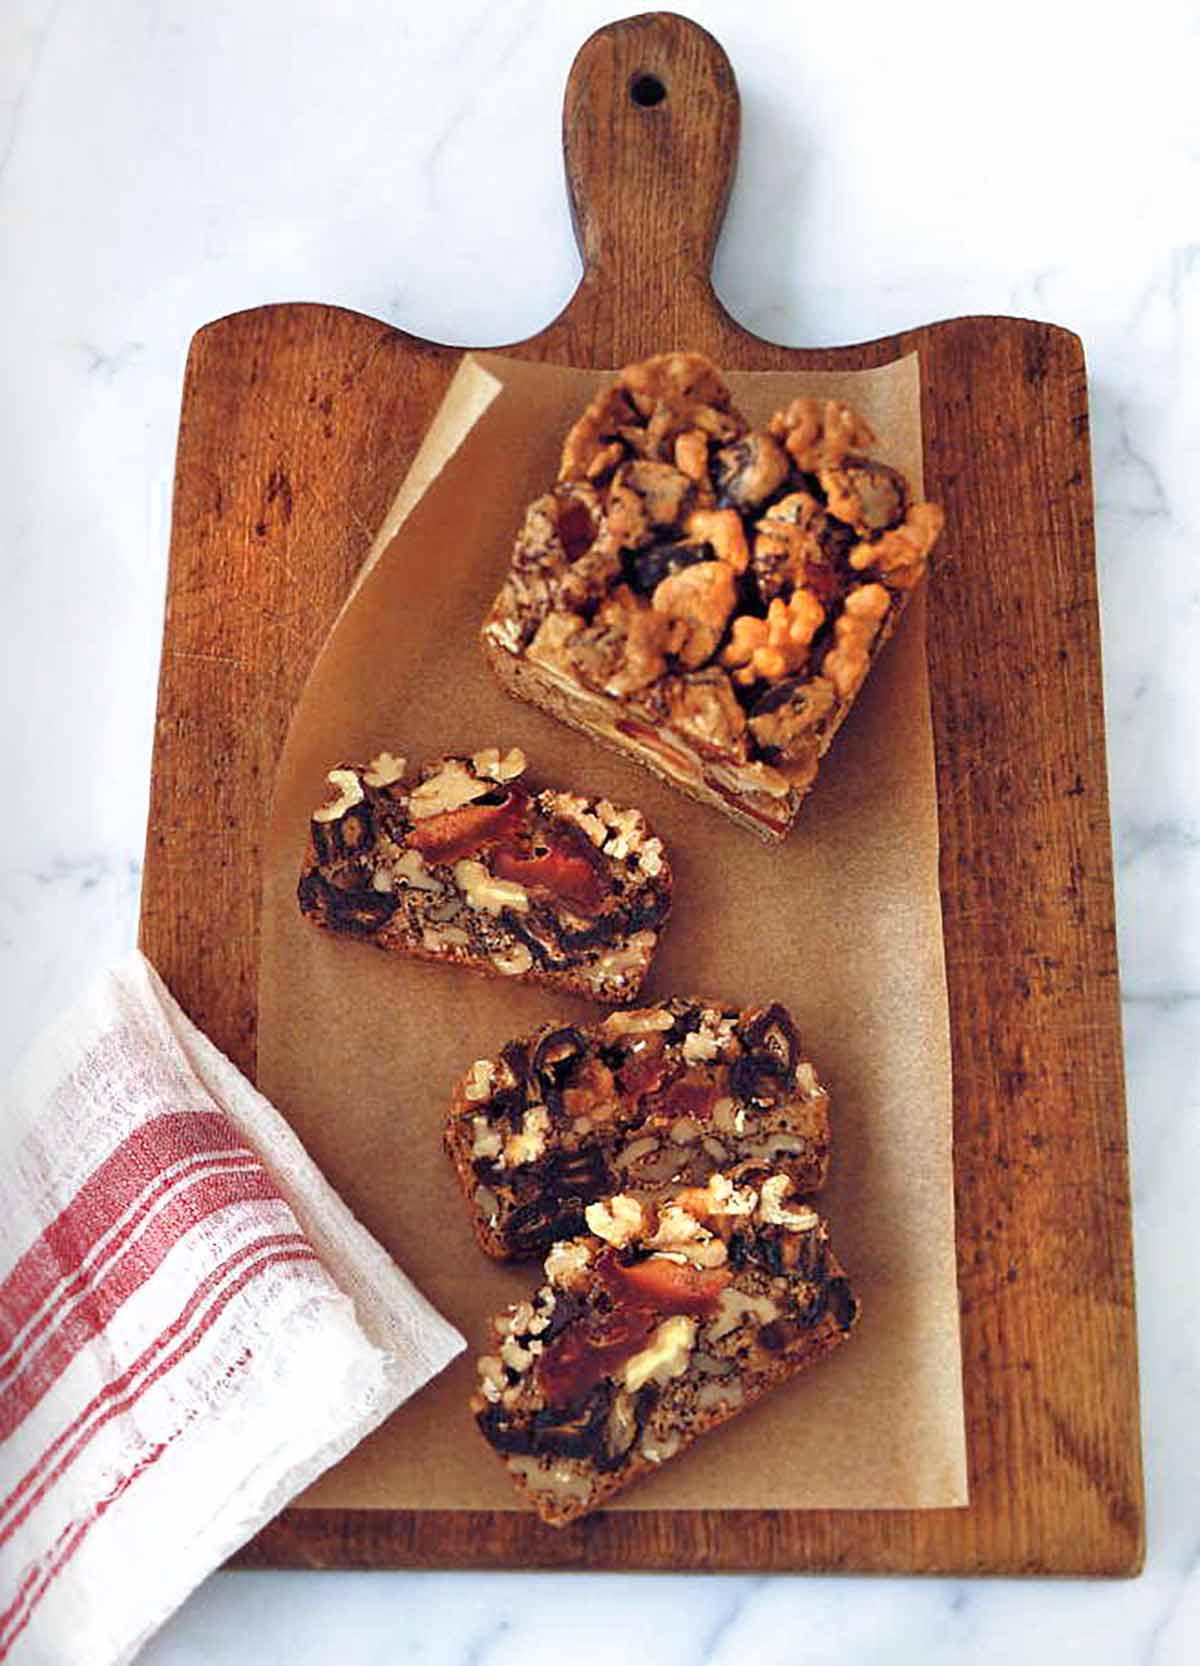 Dried fruit and nut cake cut into three slices on a cutting board on marble